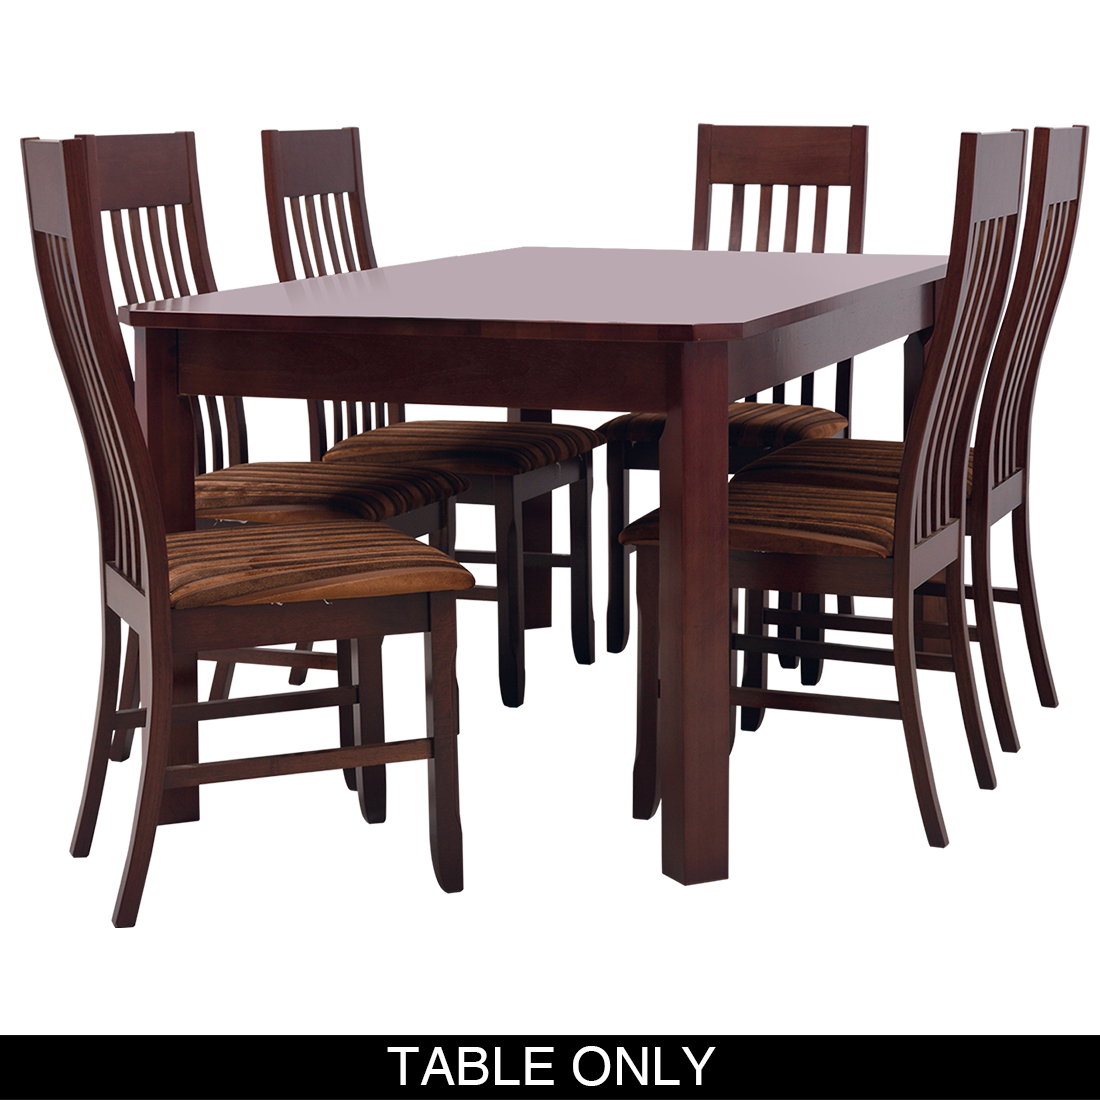 Harper Dining Room Suit - 6 Seater Table Only